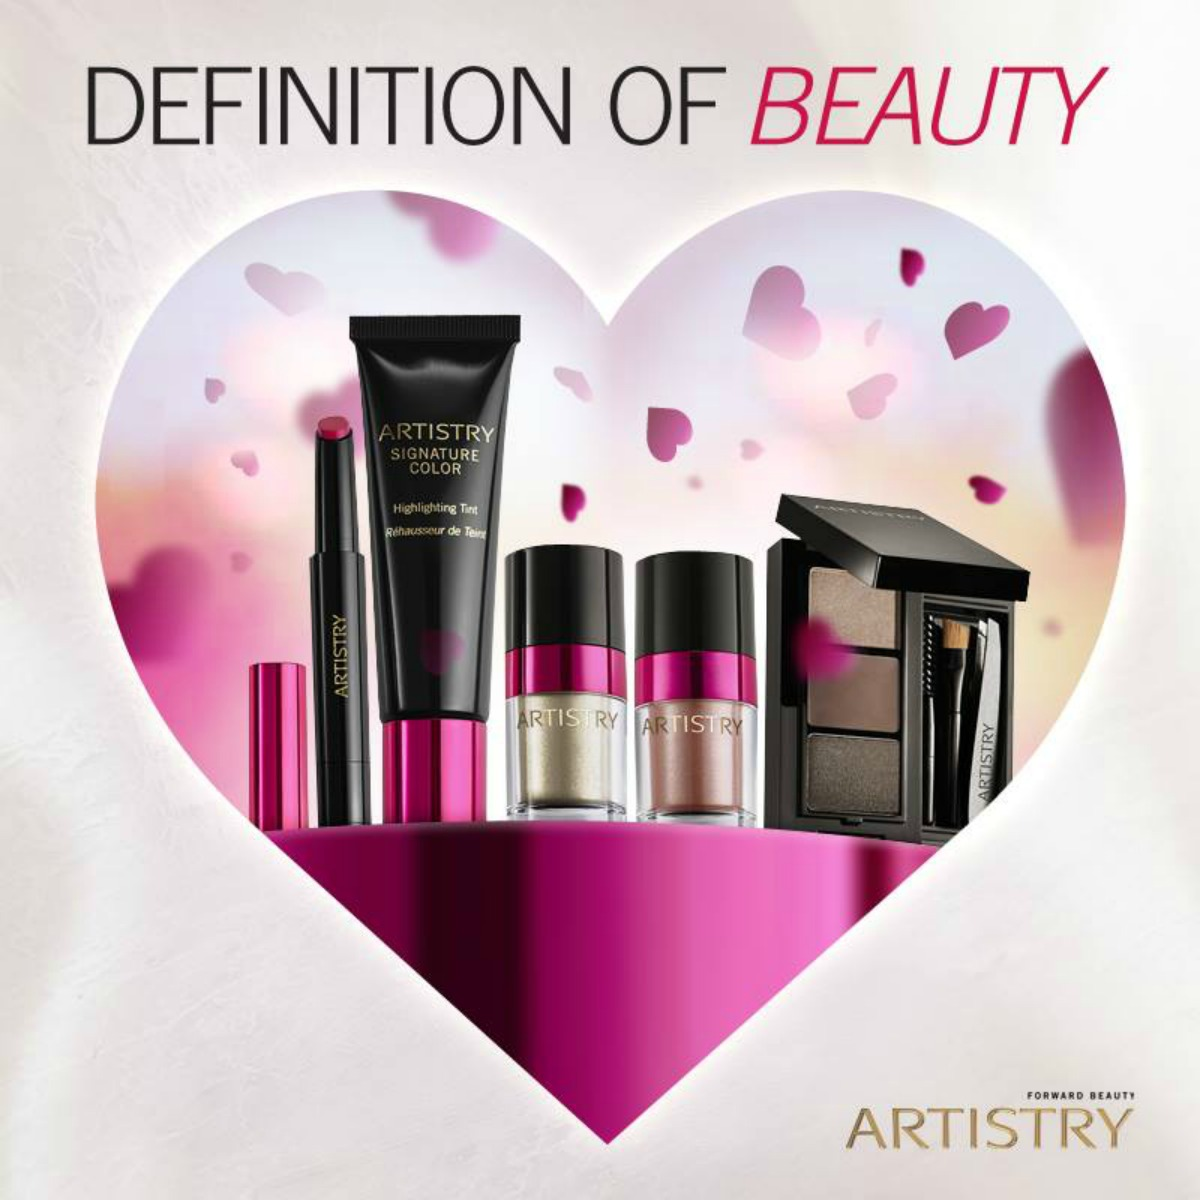 Artistry_ModernIcon_collection_beautyinfiveminutescom1